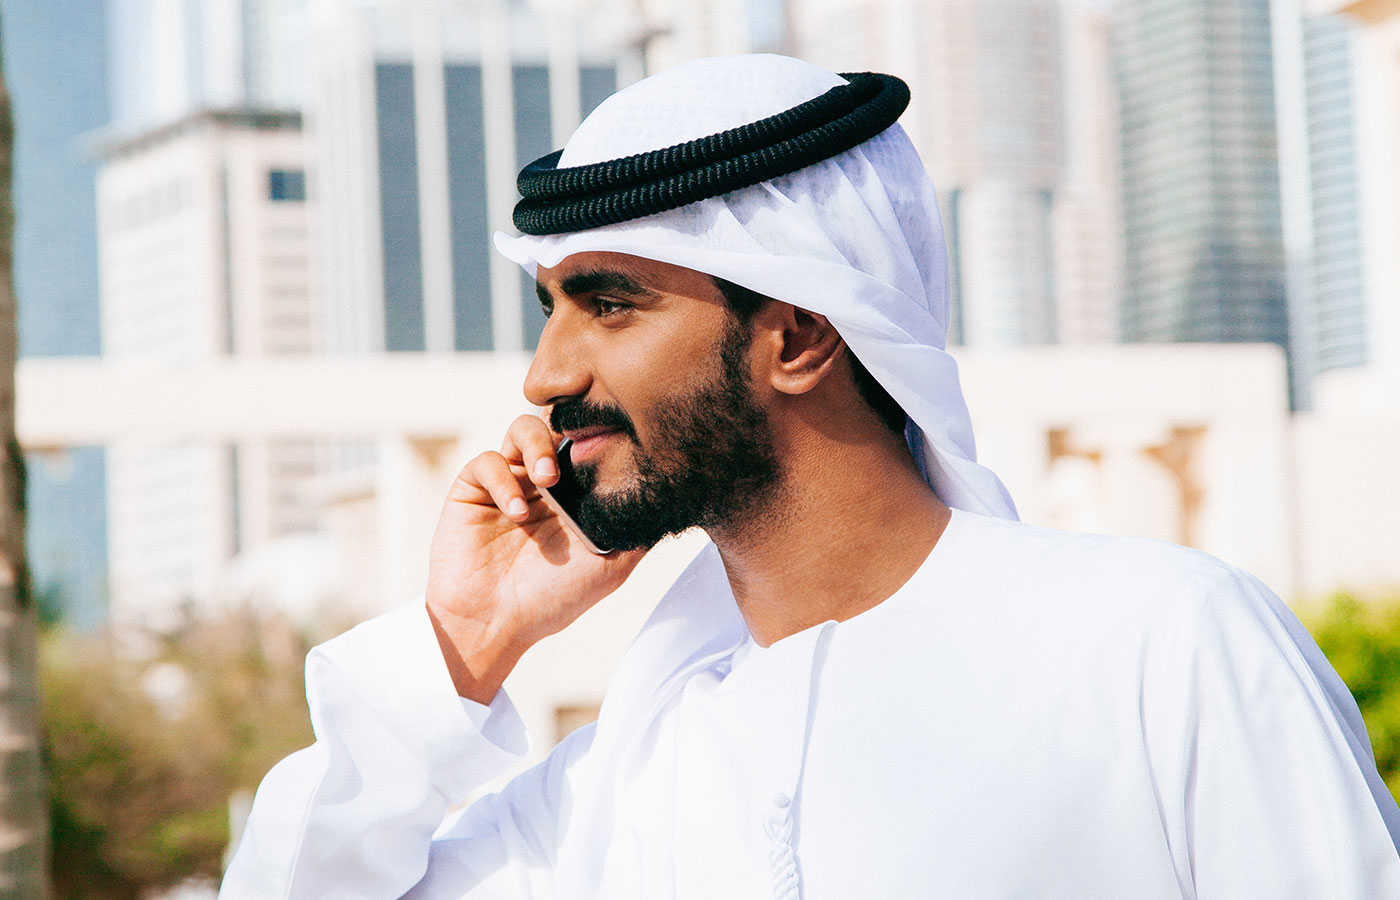 Emirati gentleman on the mobile phone